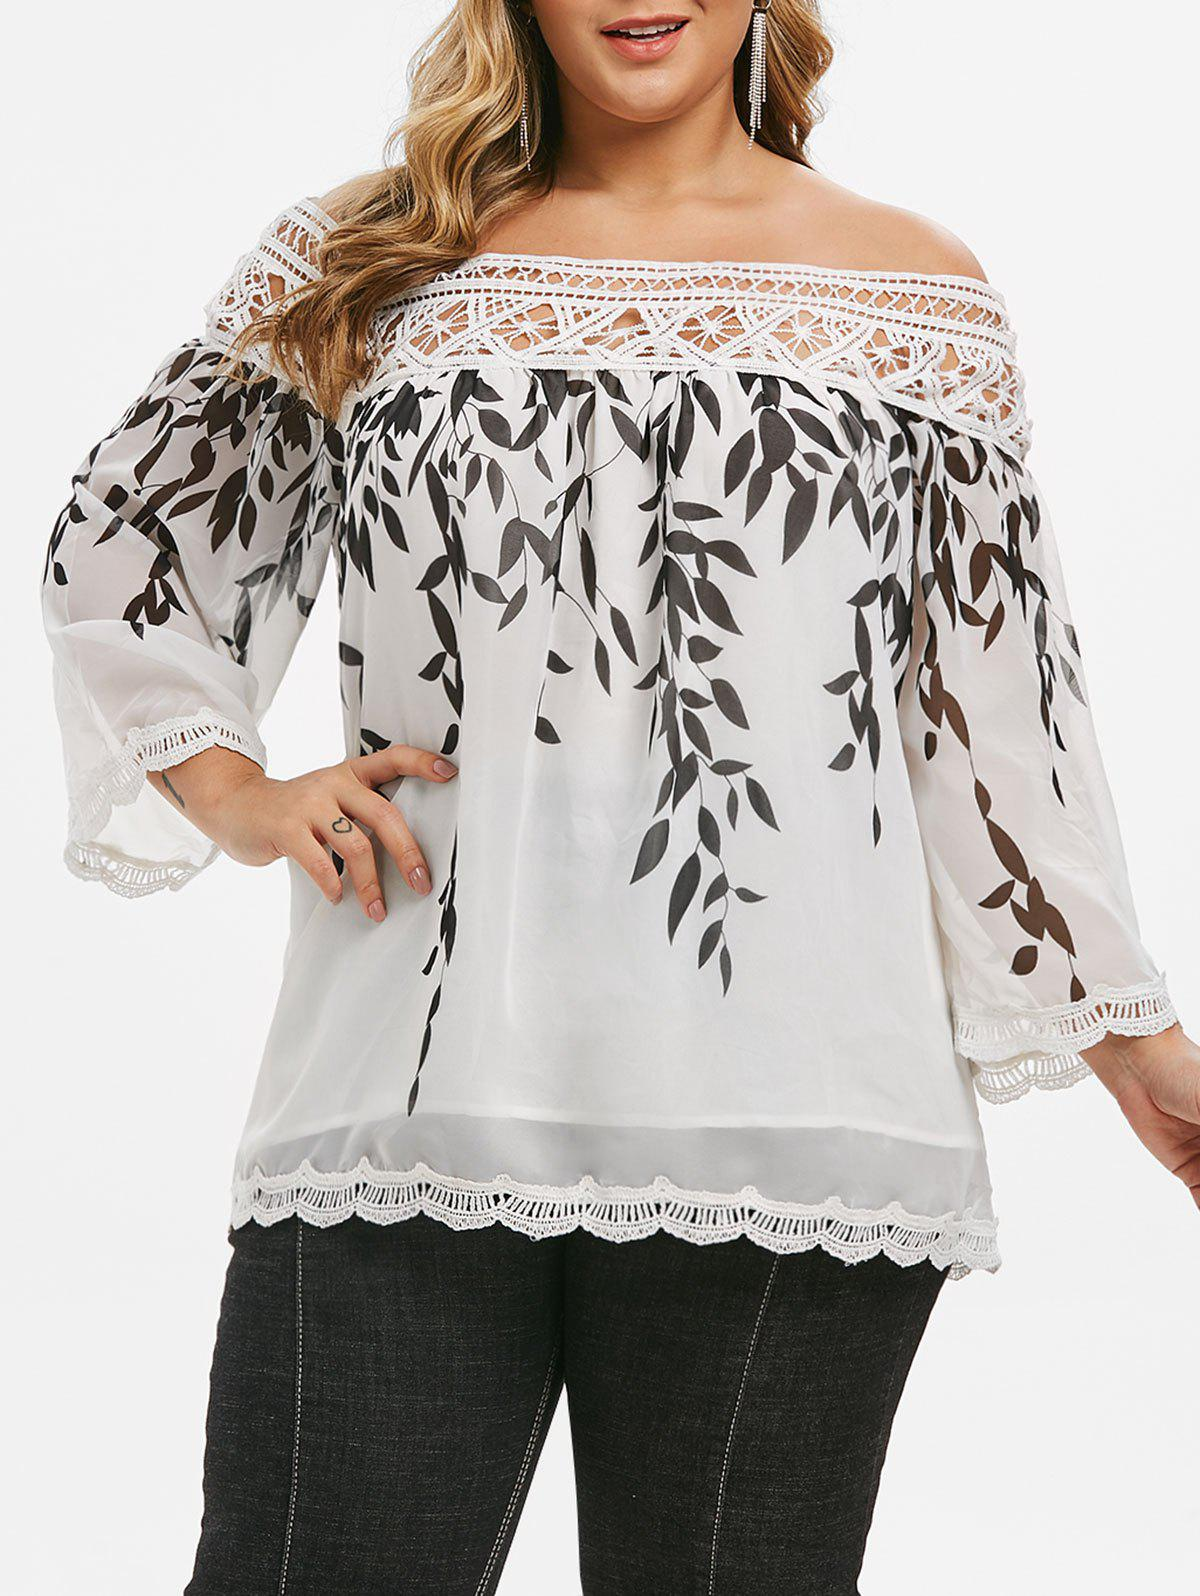 Leaves Print Crochet Lace Panel Scalloped Plus Size Blouse - WHITE L